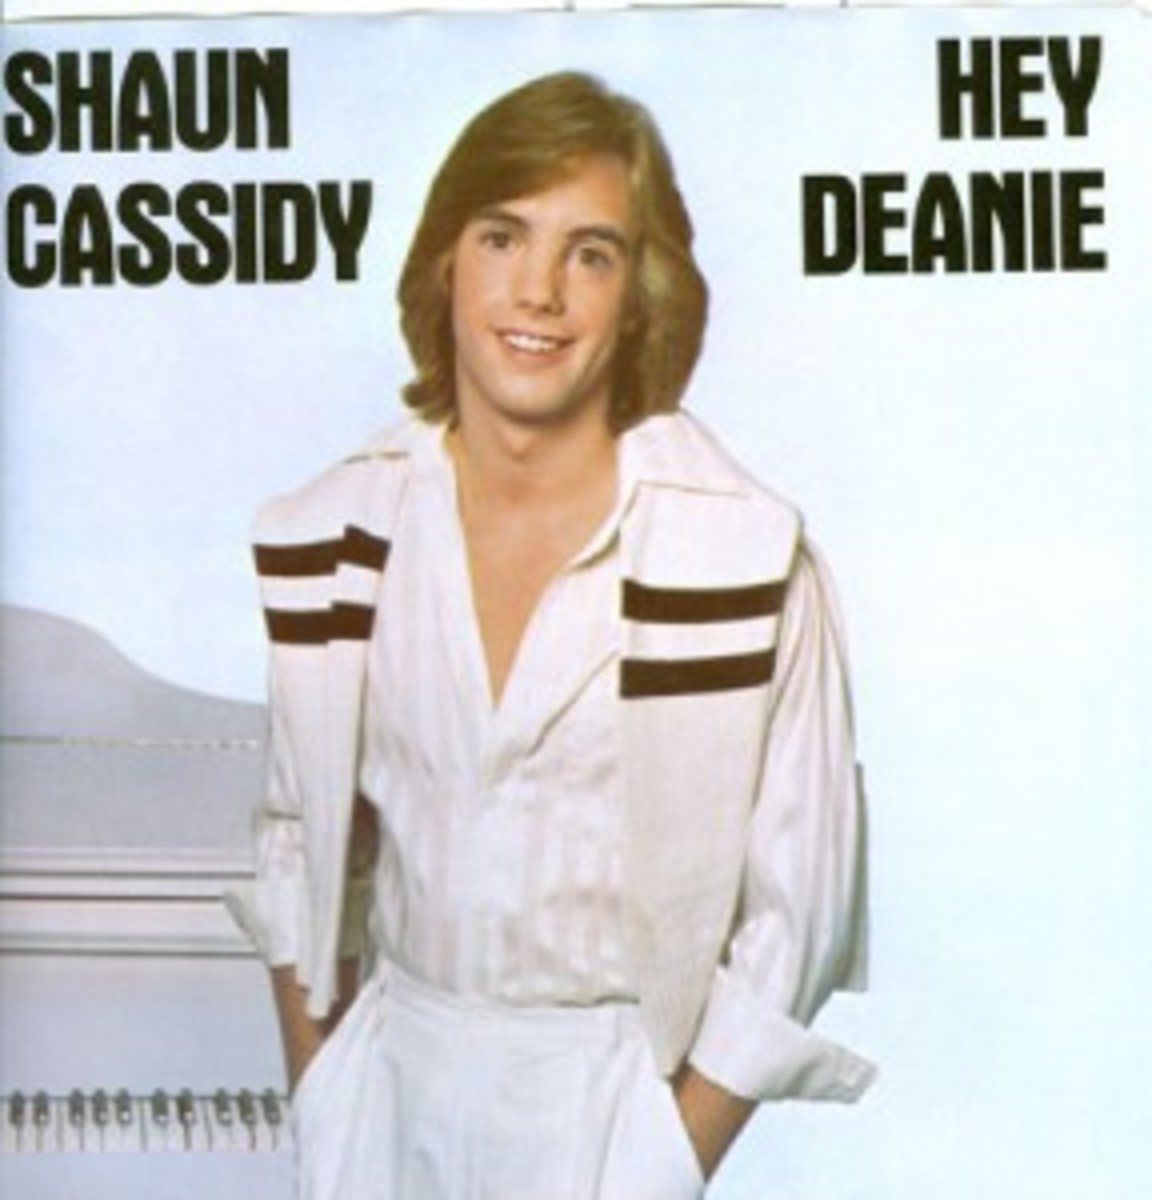 Shaun Cassidy Hey Deanie picture sleeve